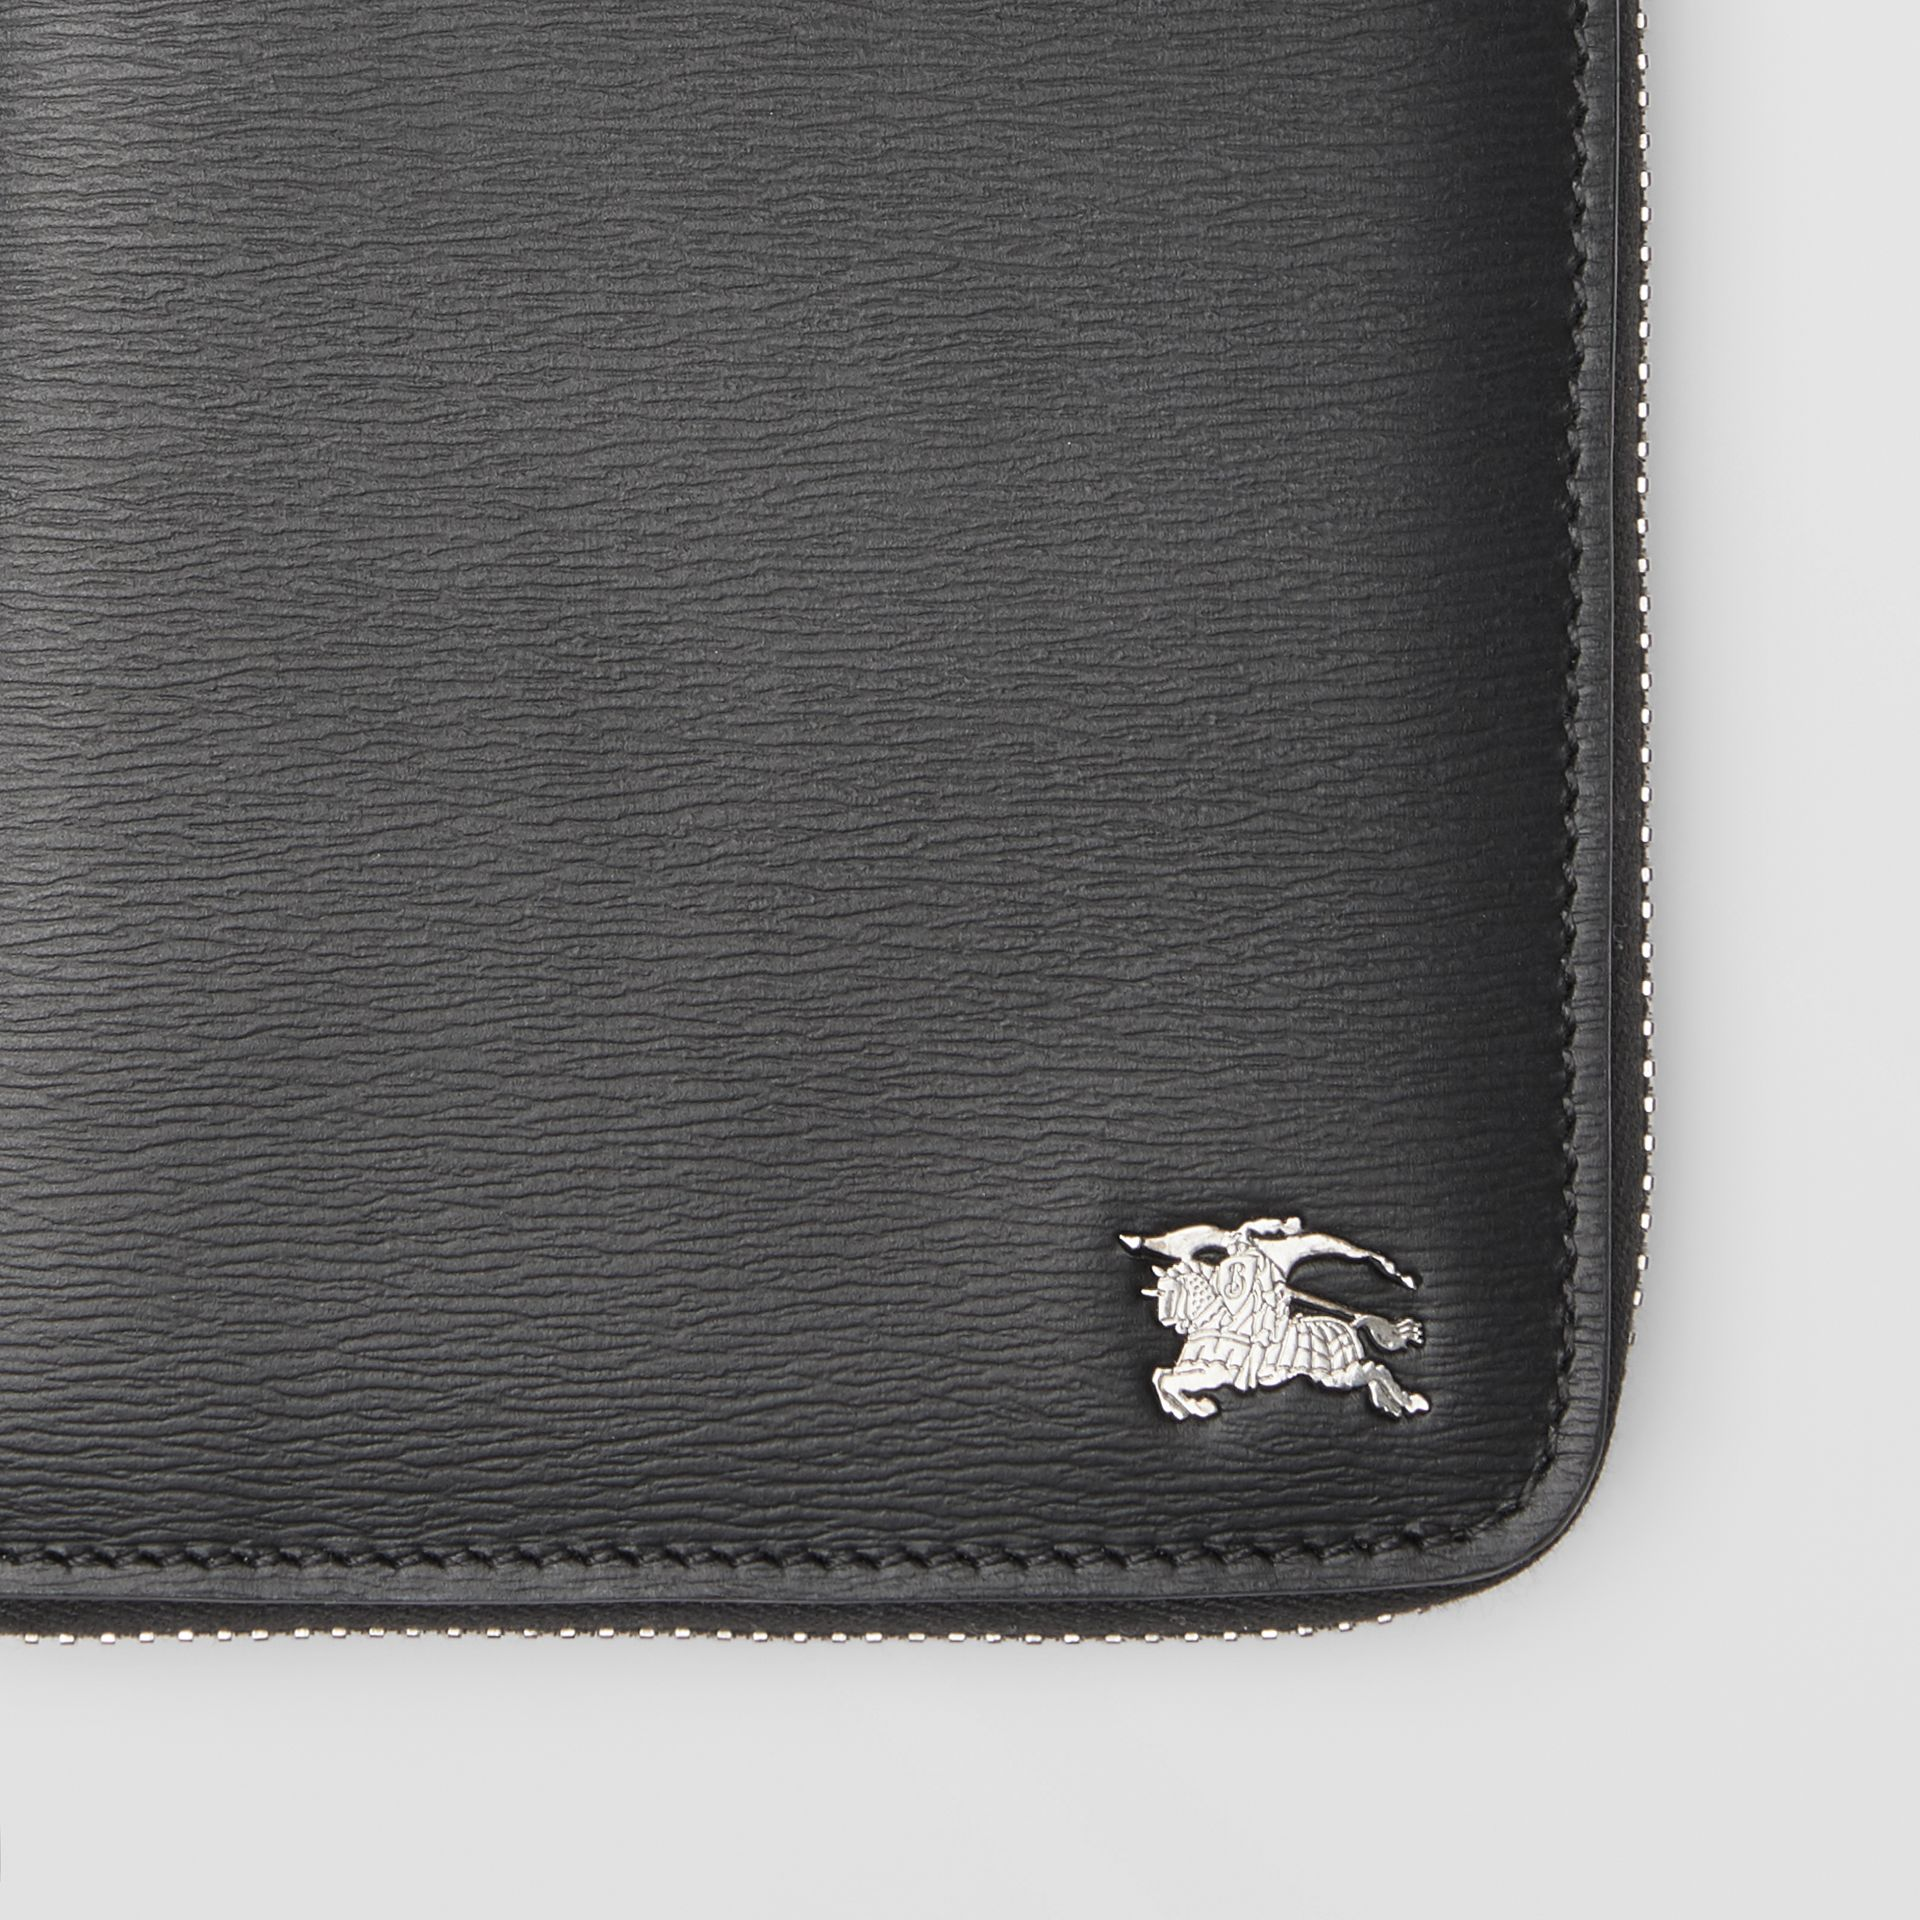 London Leather Ziparound Wallet in Black - Men | Burberry Singapore - gallery image 1